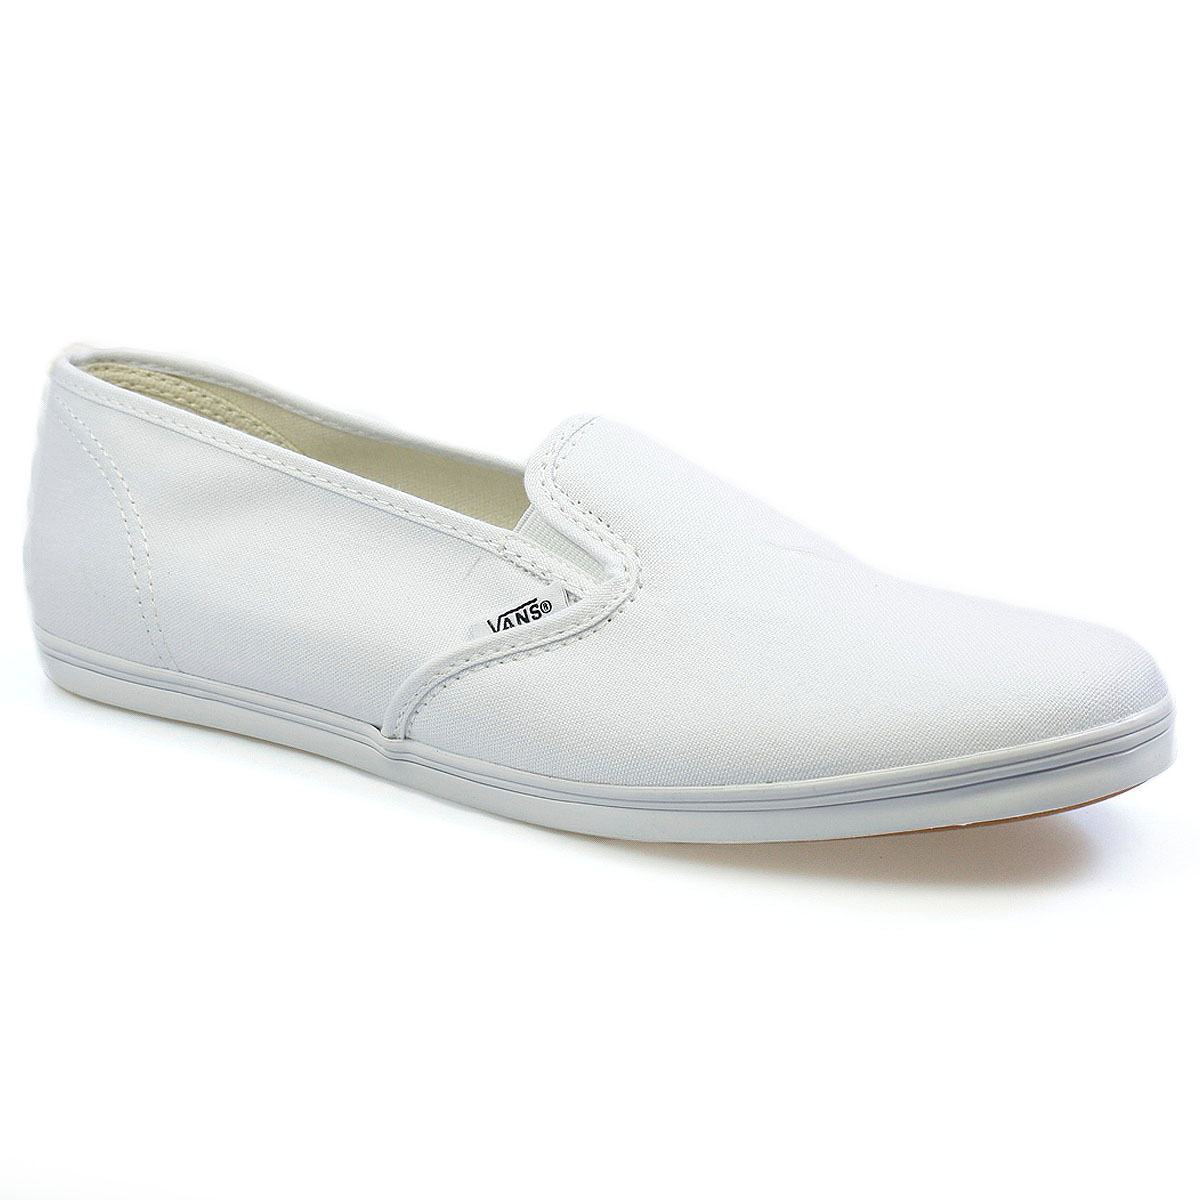 vans lo pro womens white canvas slip on low top trainers